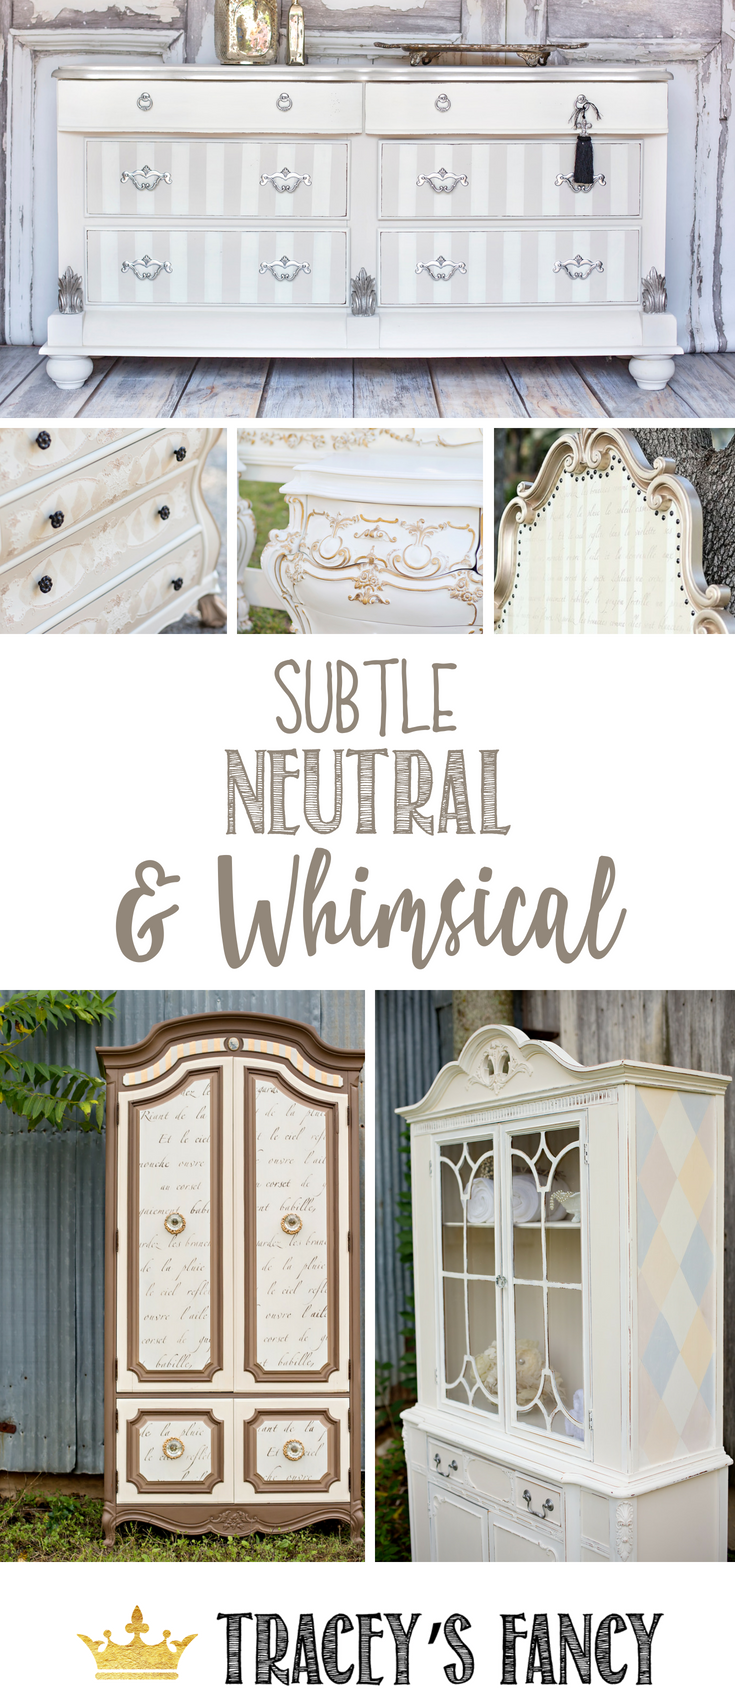 Subtle Neutral and Whimsical Furniture by Tracey's Fancy _ Painted Furniture Ideas _ Neutral Furniture Ideas _ #furnituremakeover #whimsical